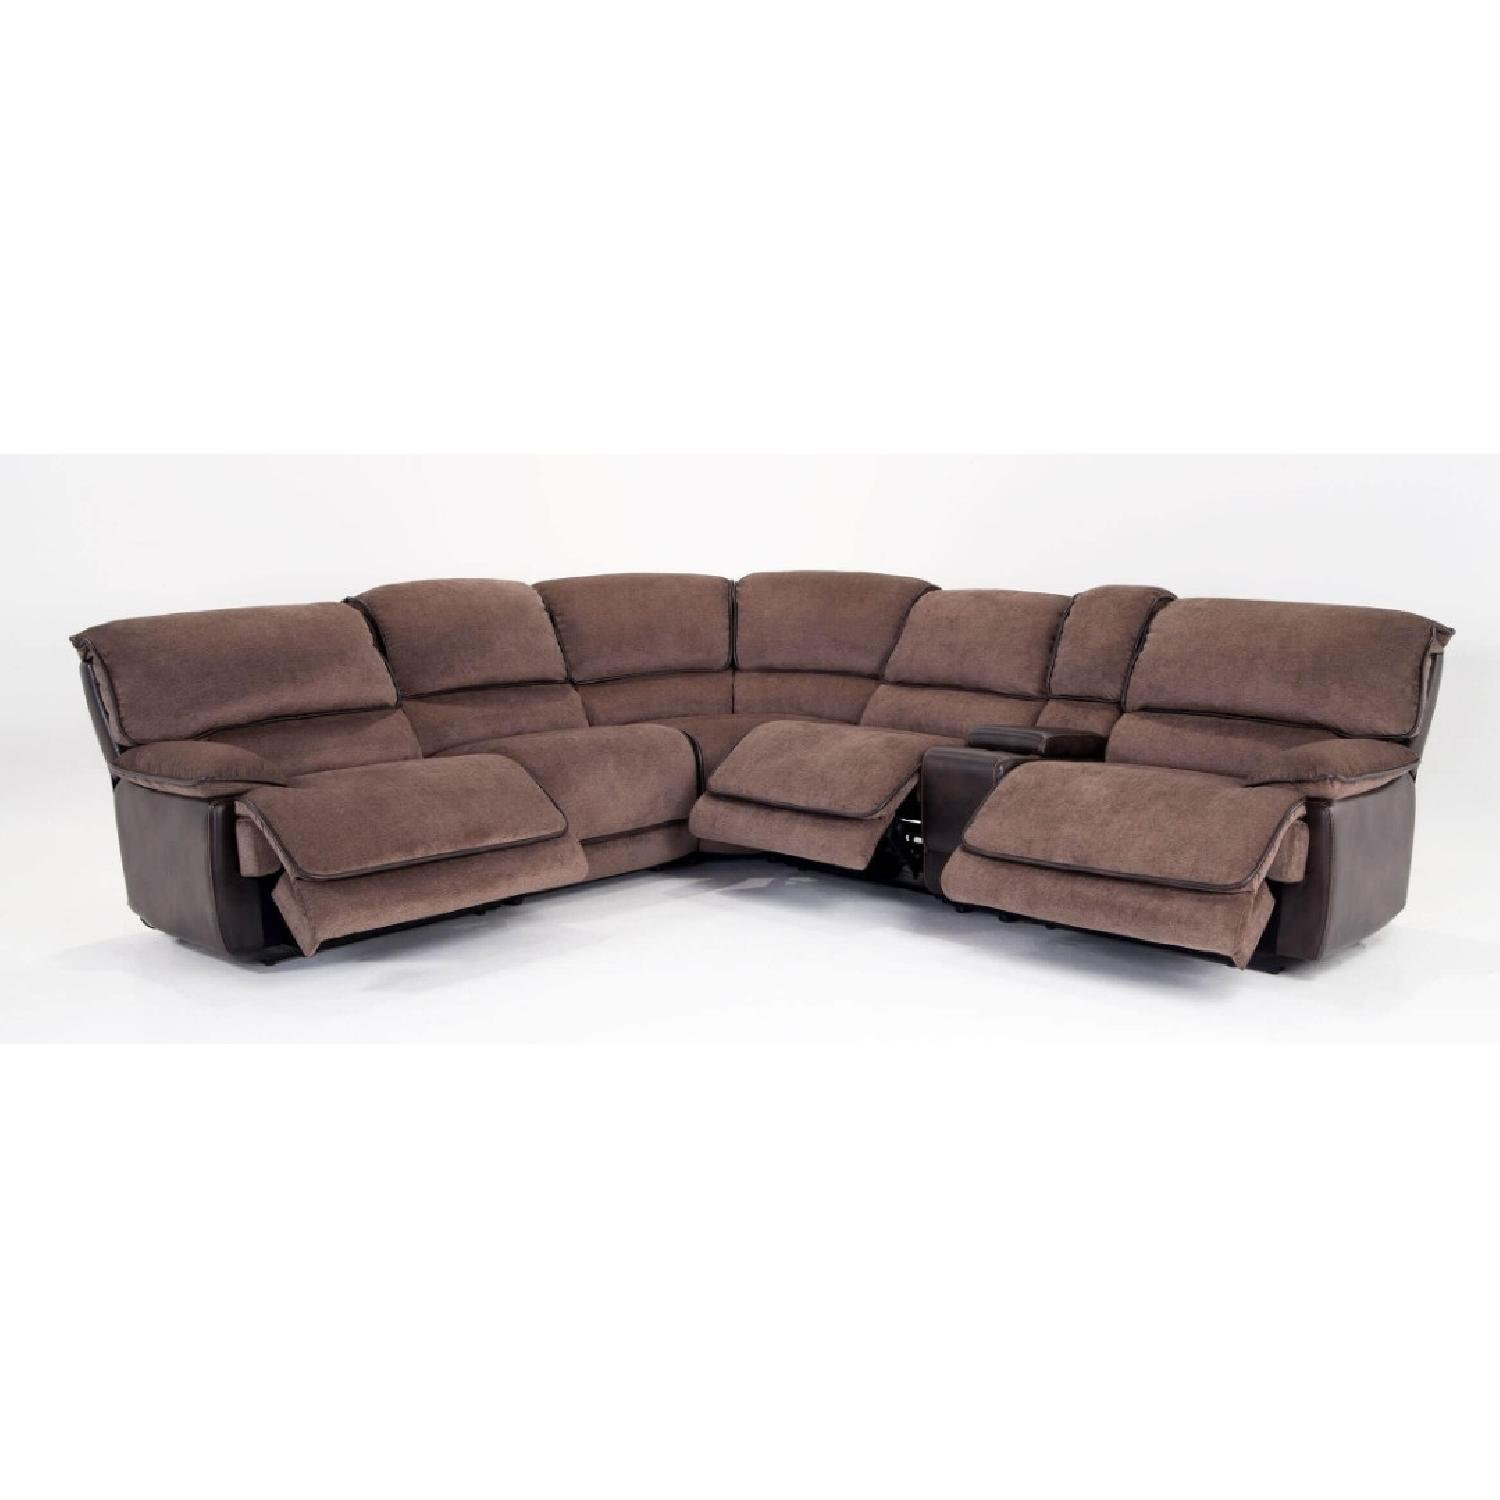 Bob's Discount 6 Piece Reclining Couch - image-4